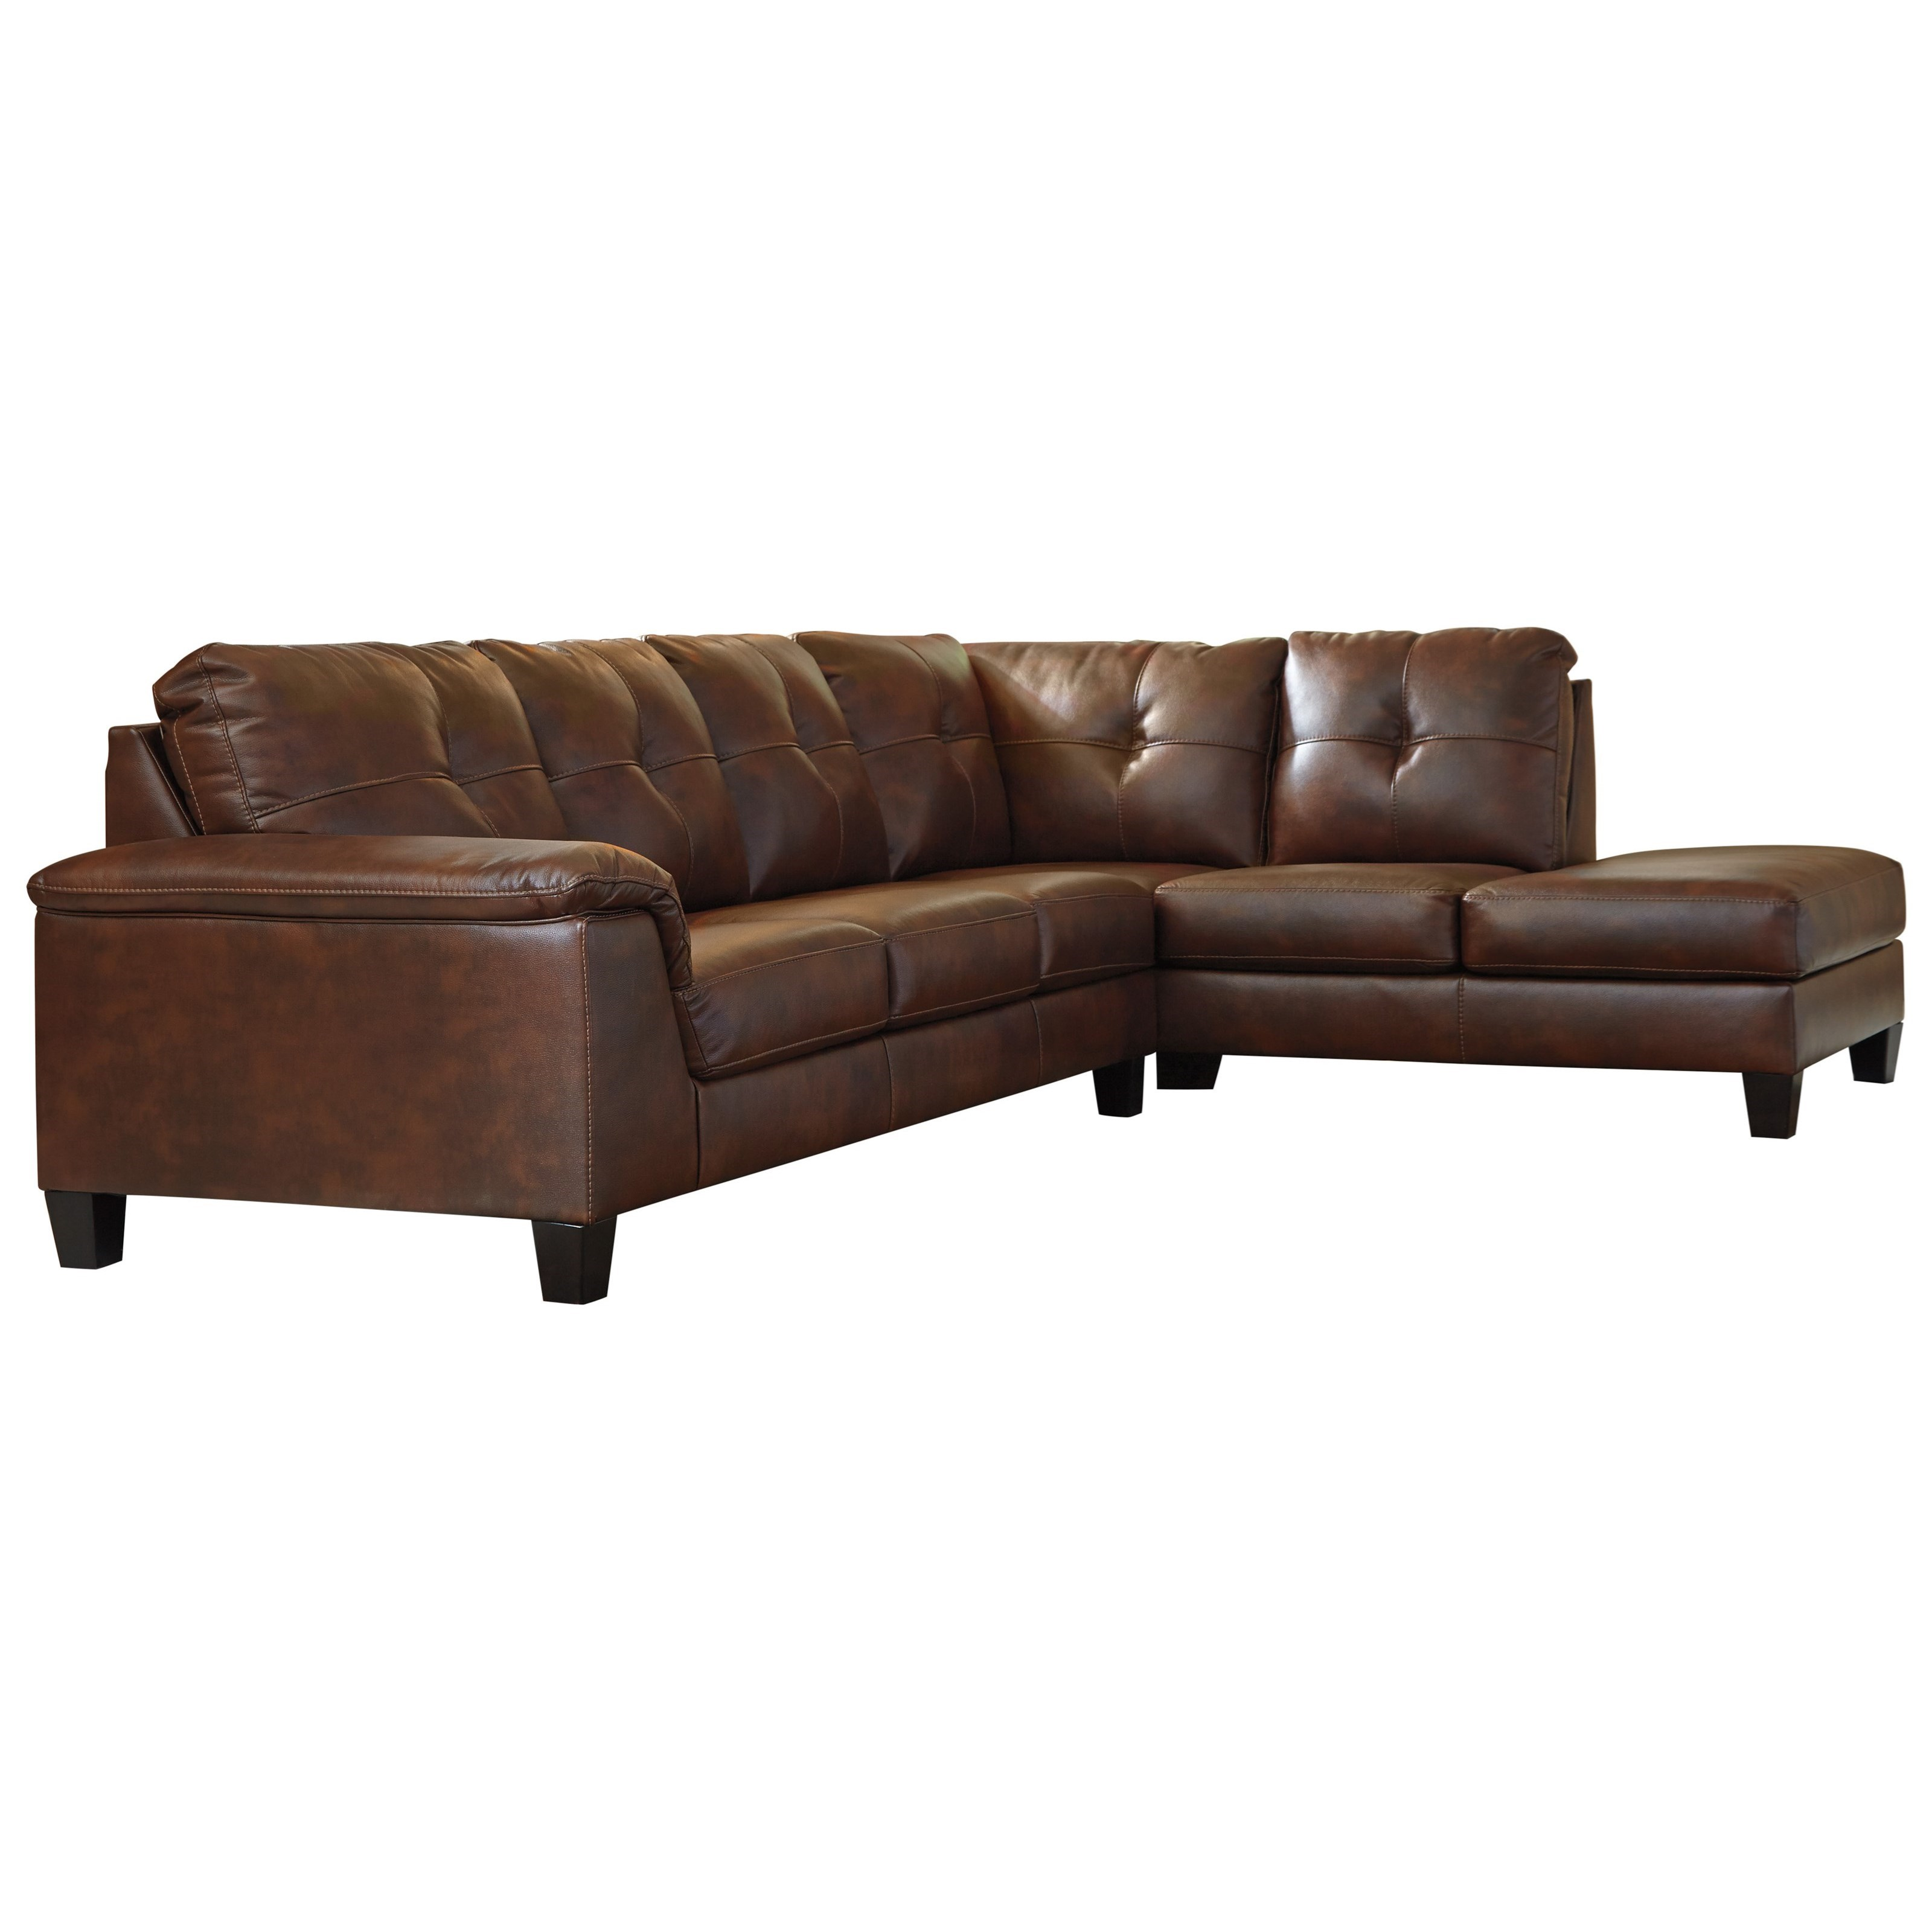 Signature design by ashley goldstone contemporary 2 piece for 2 piece sectional sofa ashley